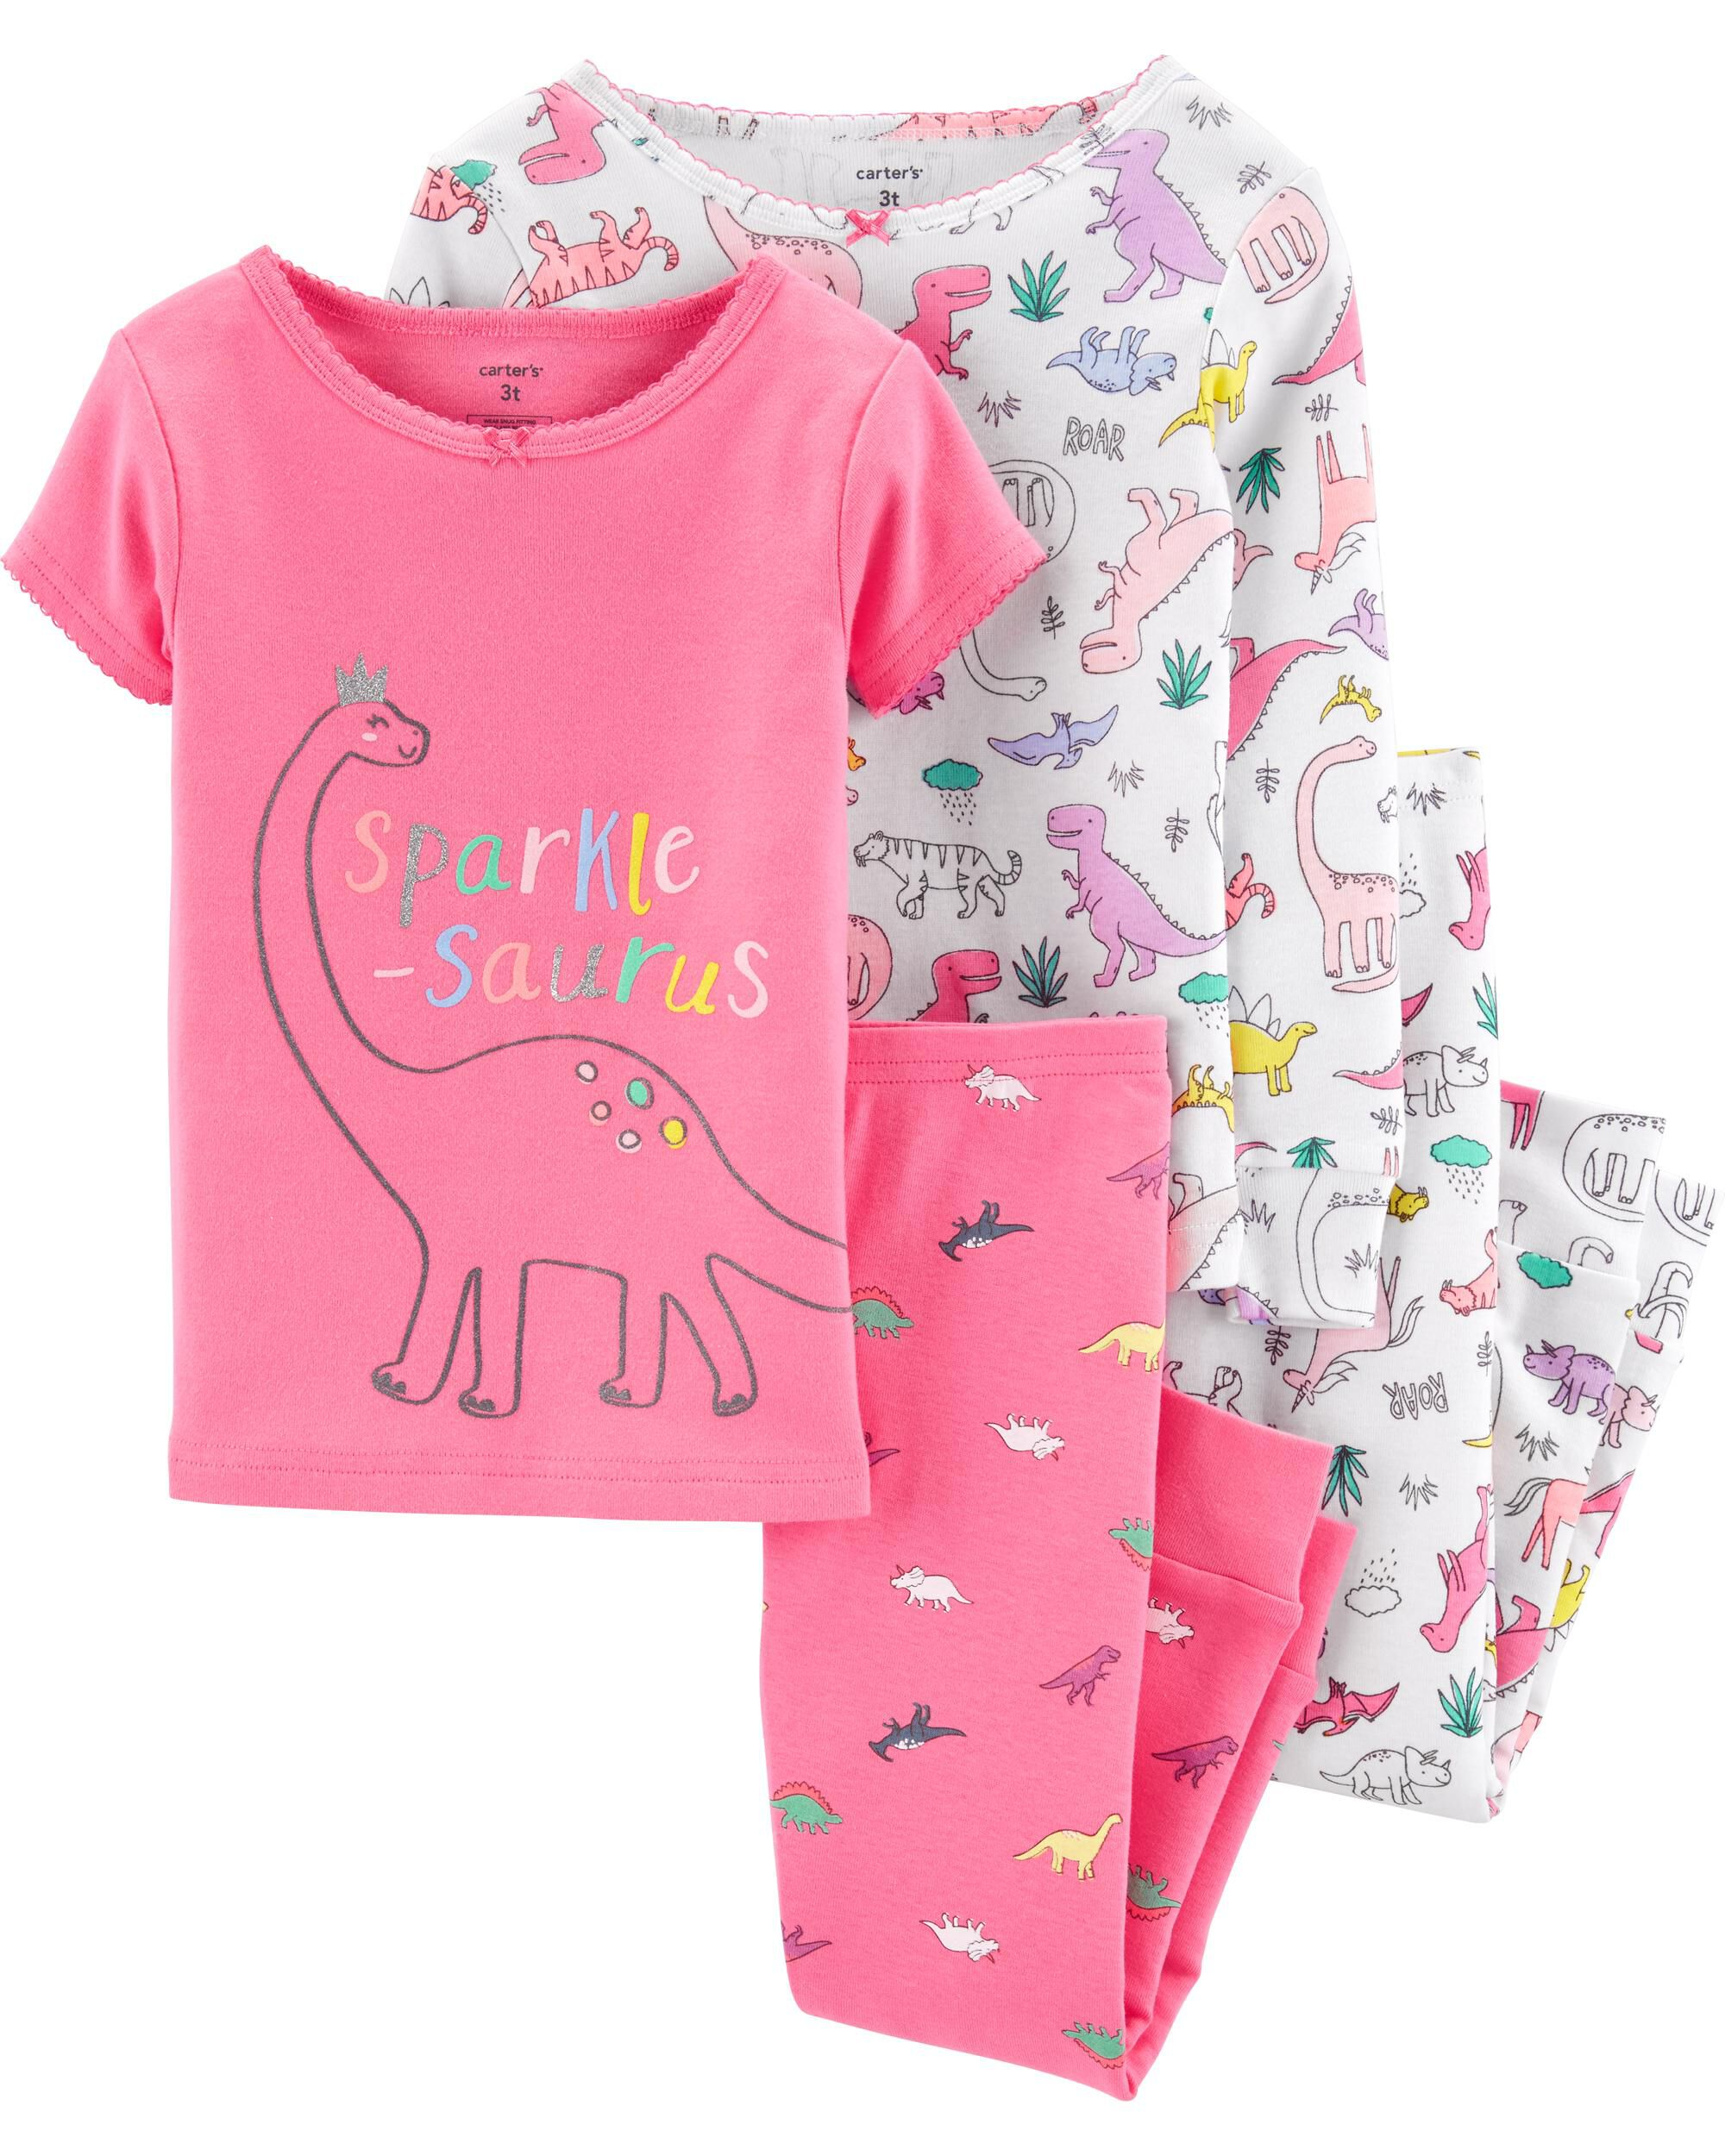 Carters Toddler and Baby Girls 4 Piece Cotton Pajama Set Unicorn, 3T